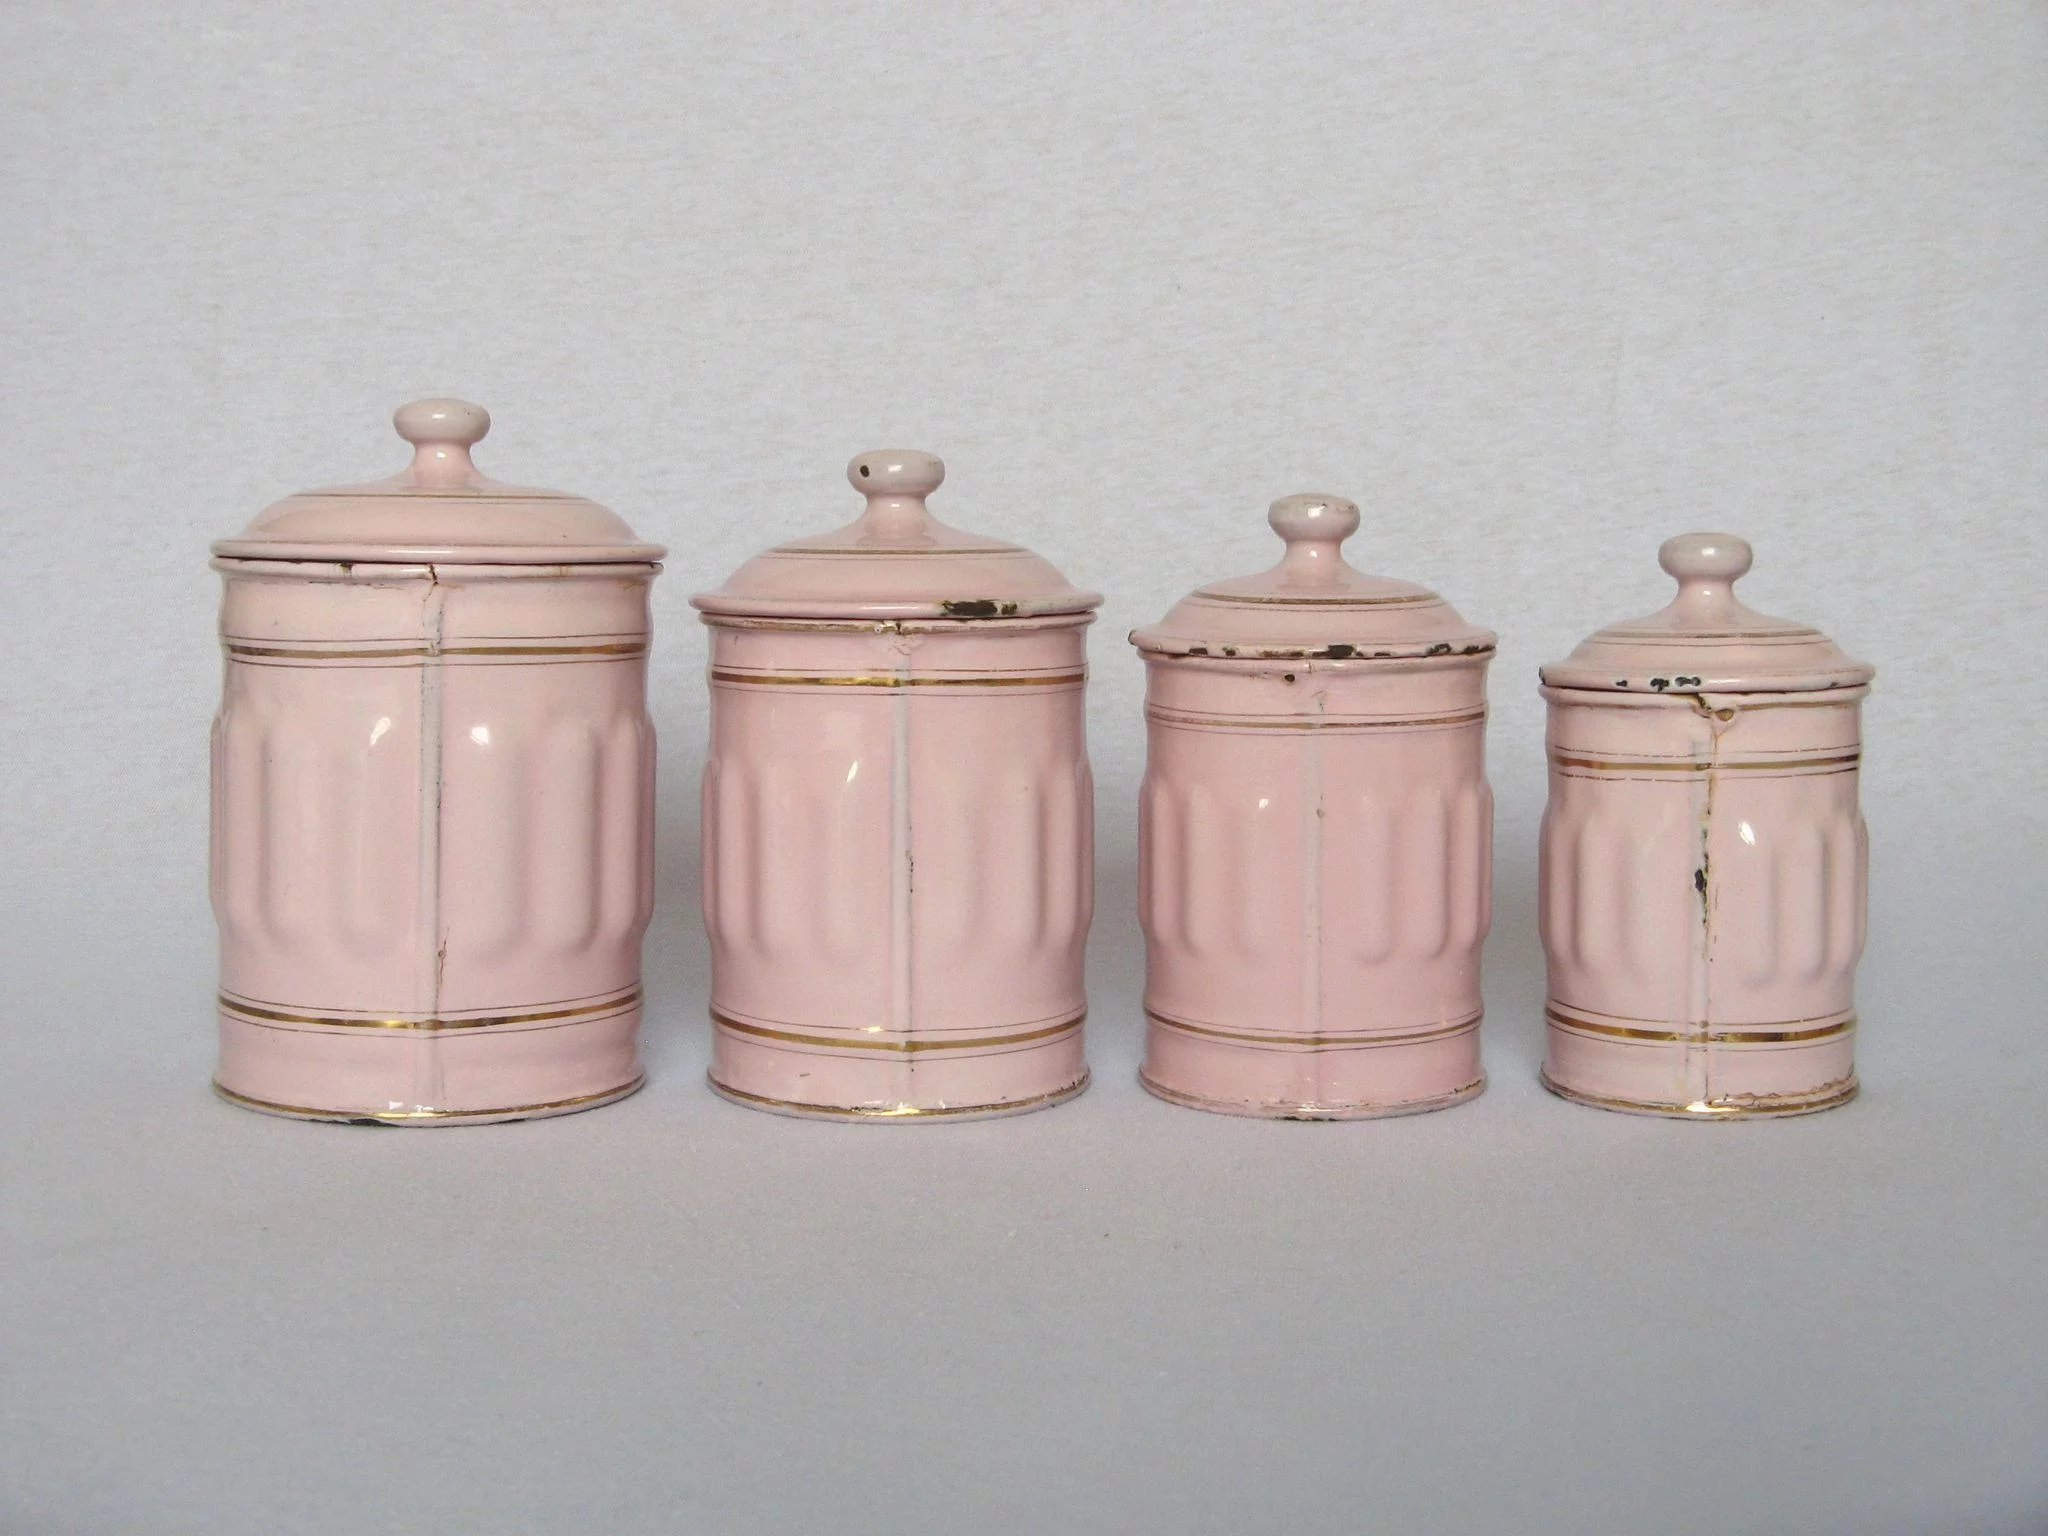 enamel kitchen canisters pink enamel french graniteware kitchen canisters yesterdays france ruby lane 4024